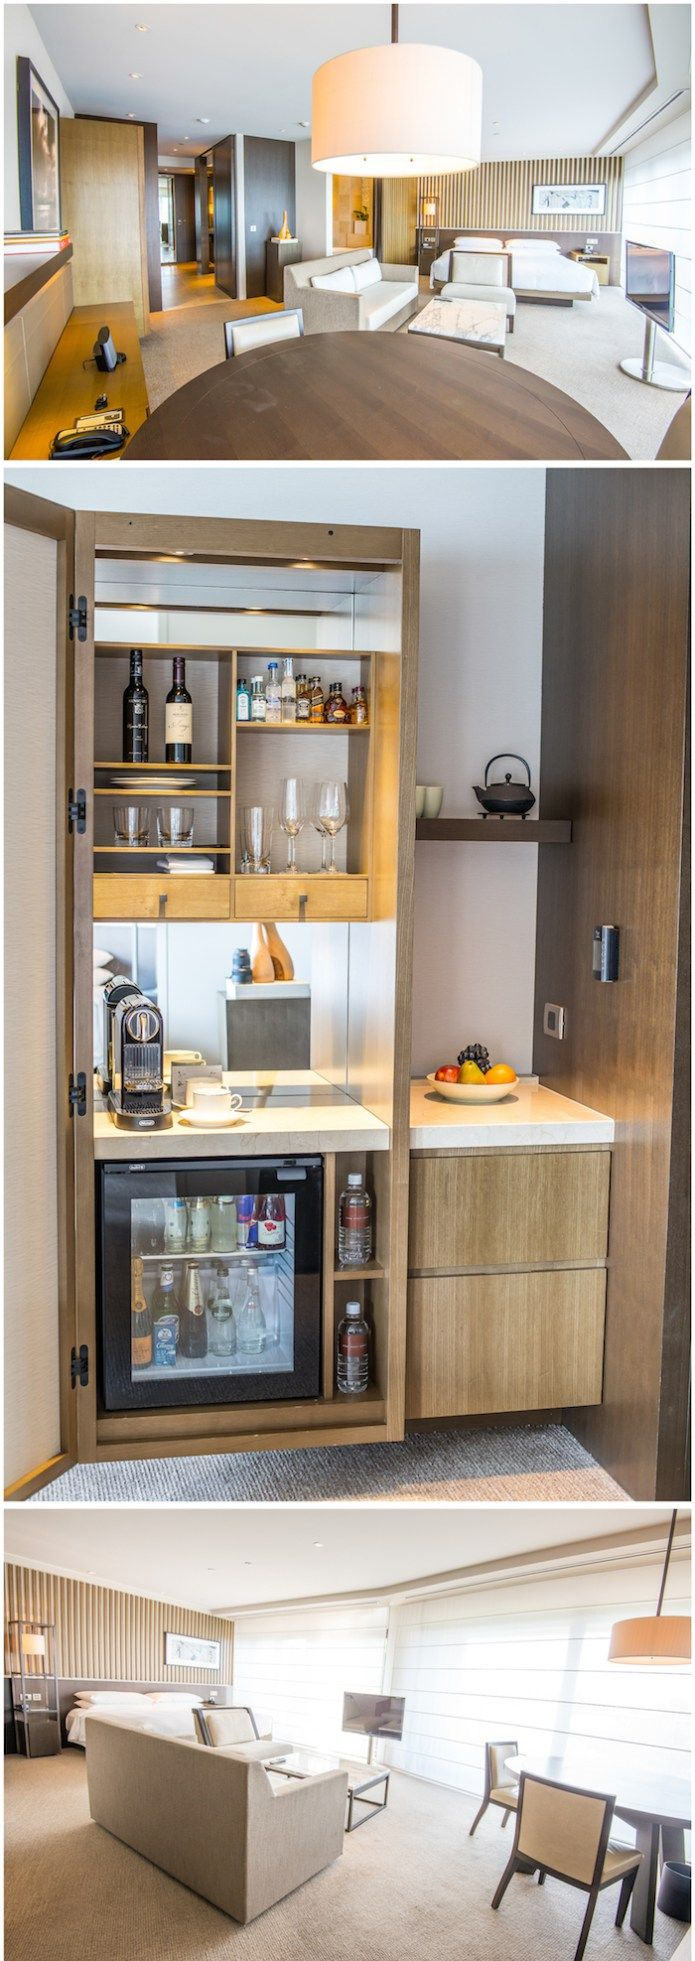 Small Hotel Room: 17 Best Images About 120 Cm Kitchen On Pinterest